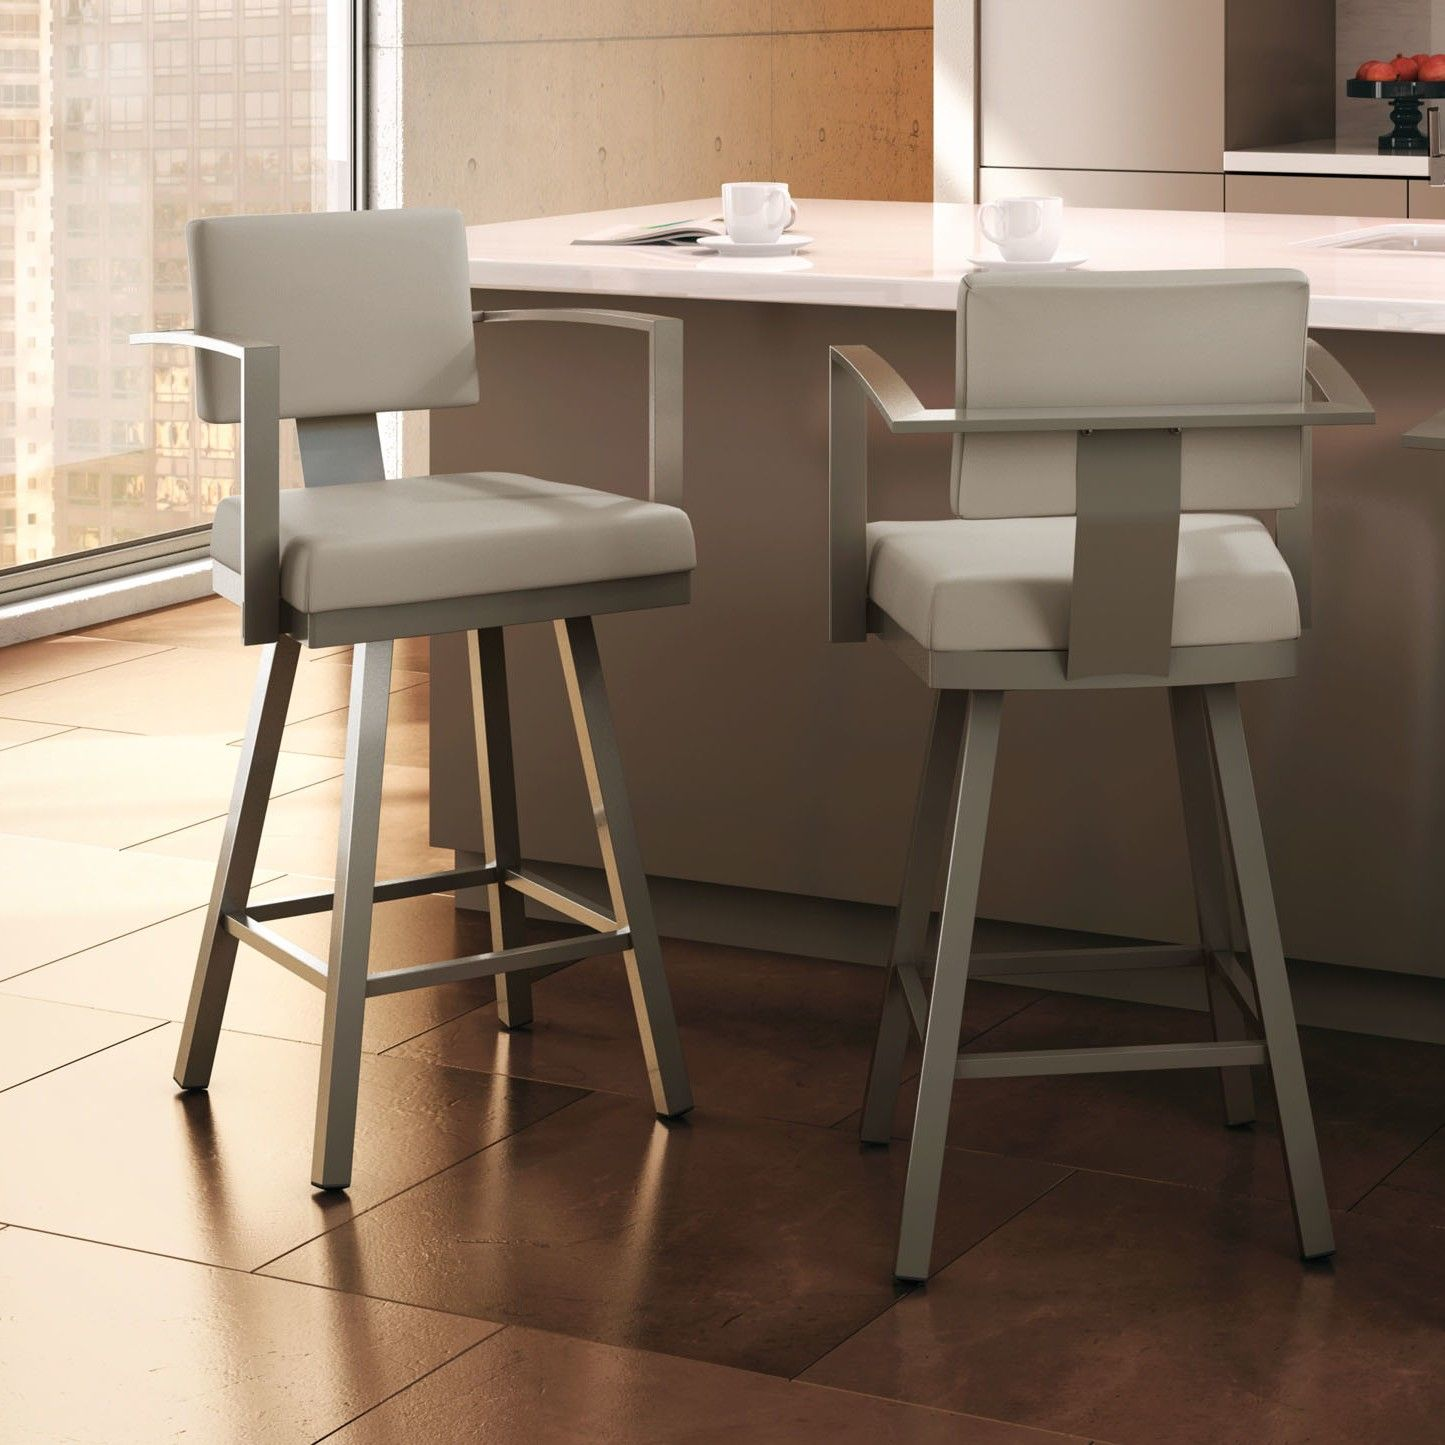 Bar Stools With Backs For Inspiring High Chair Design Ideas